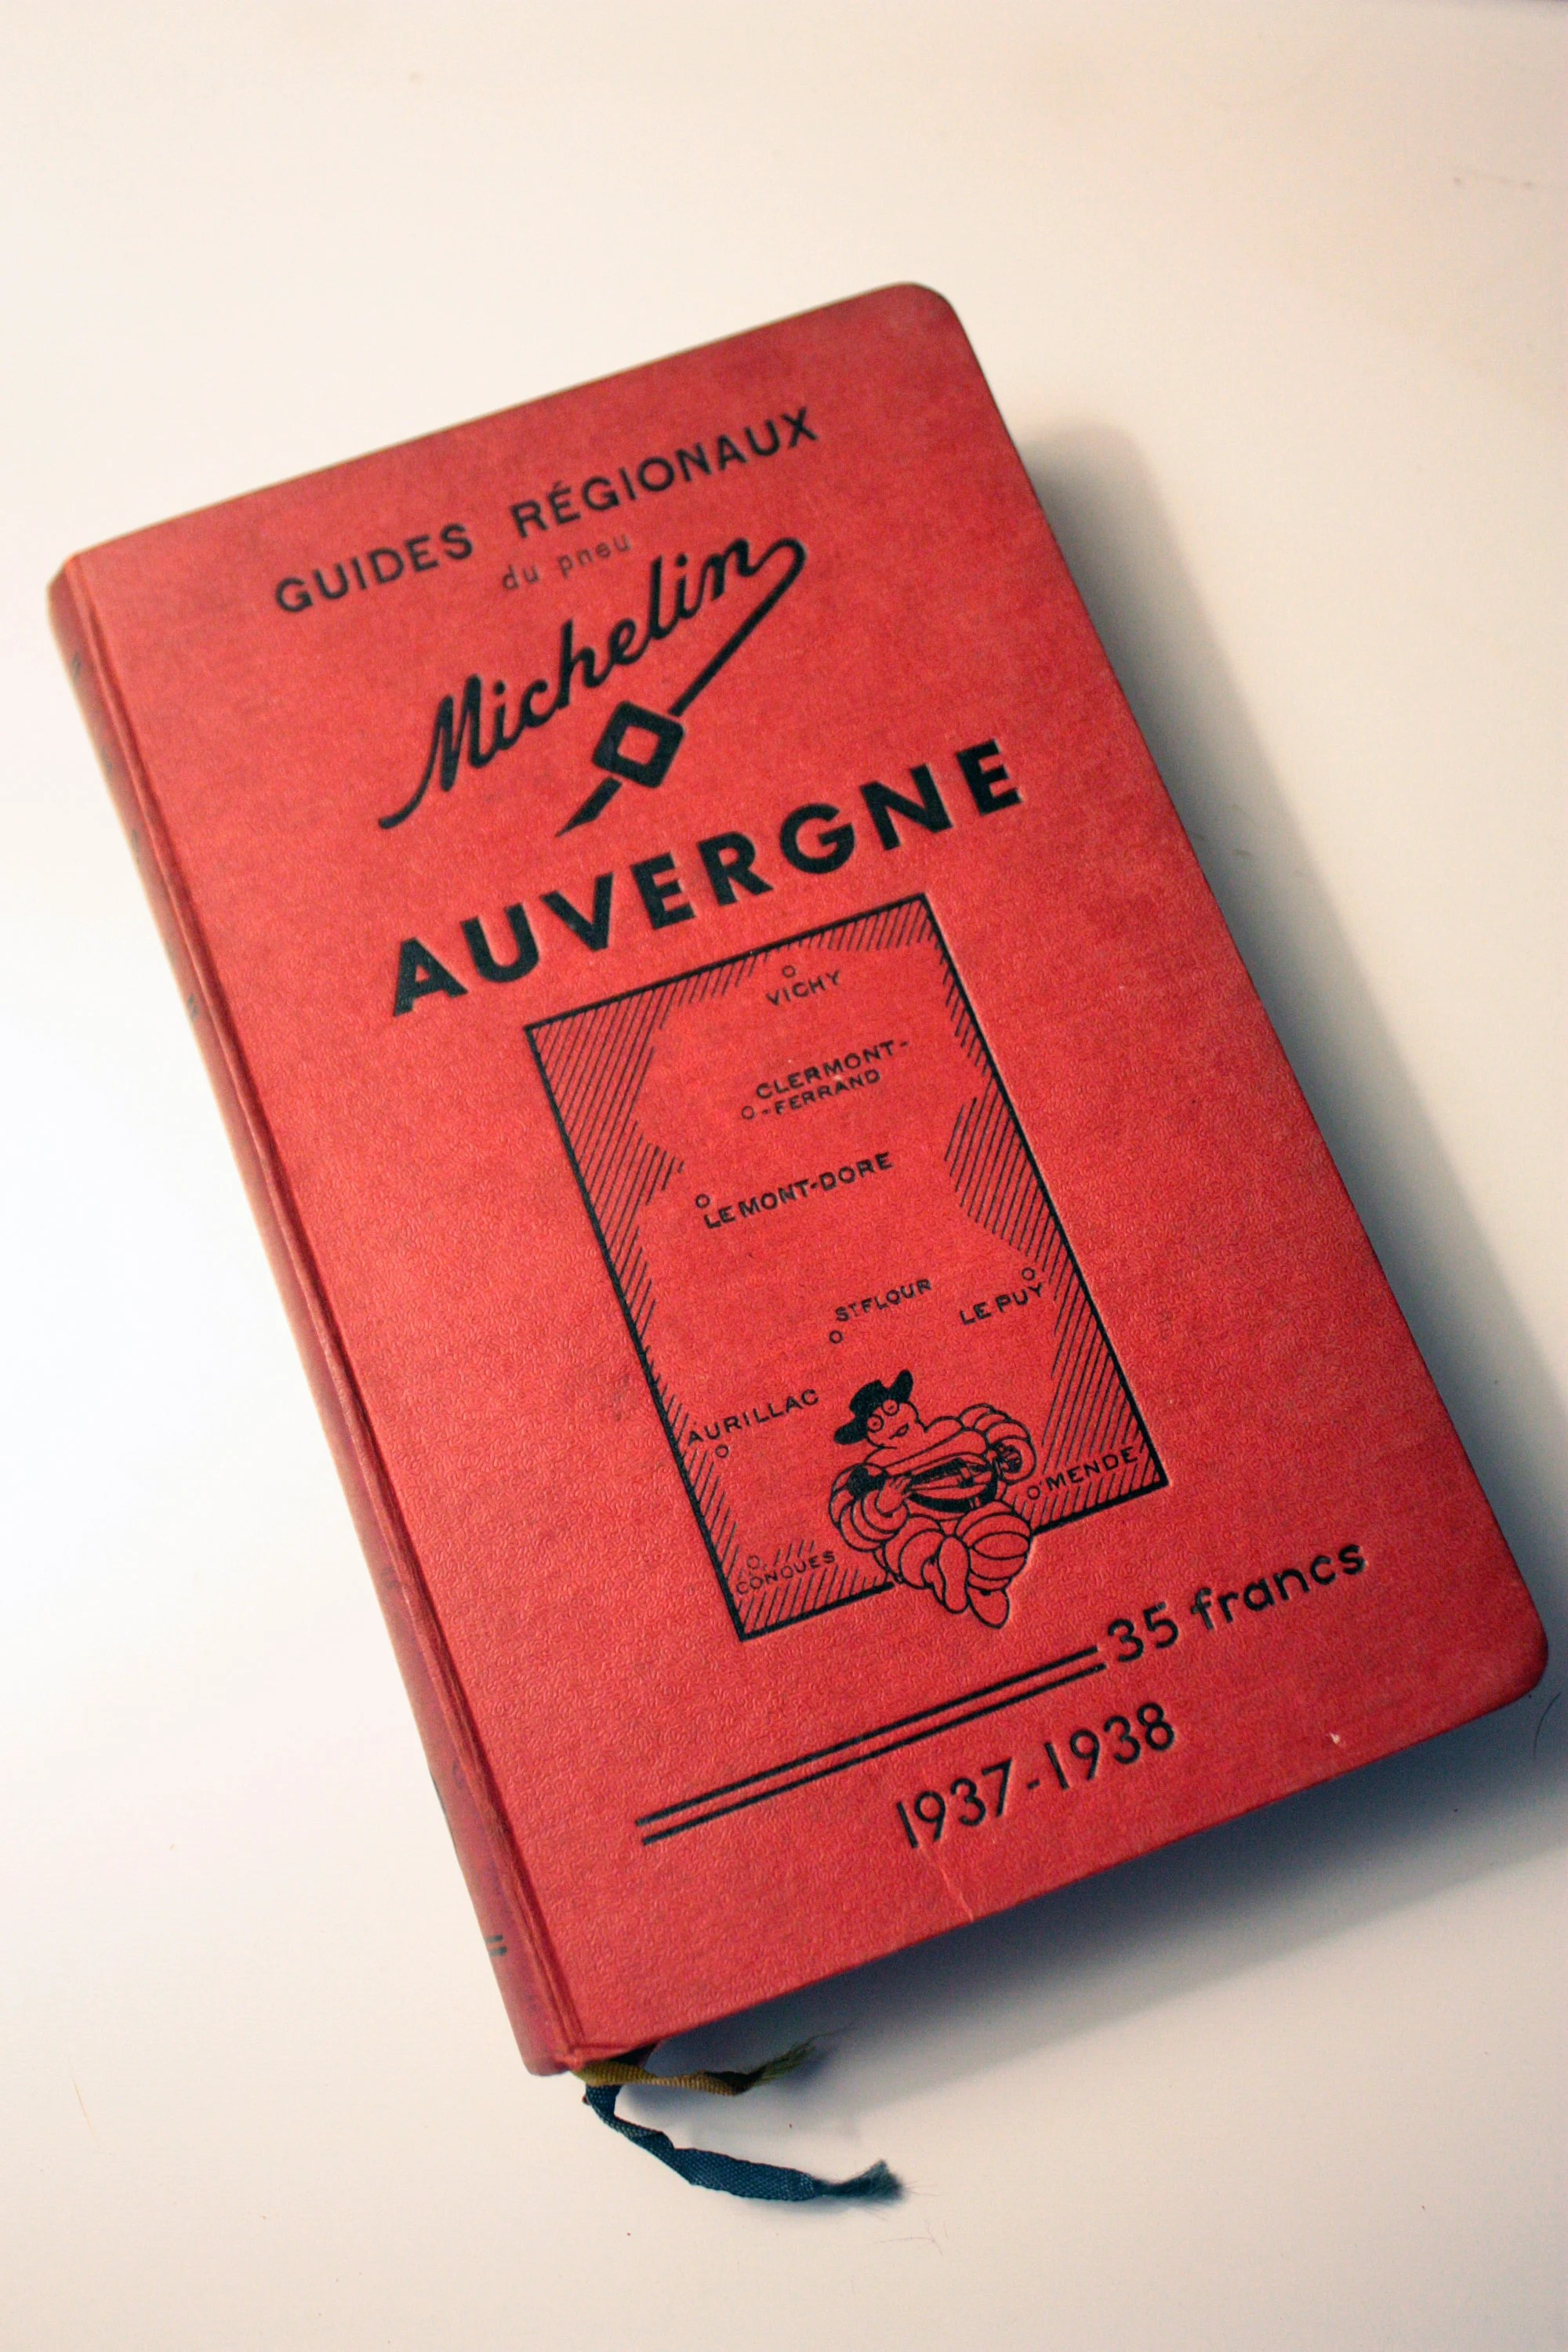 Top Pneu St Priest French Vintage 1938 Original Regional Michelin Guide To Auvergne France